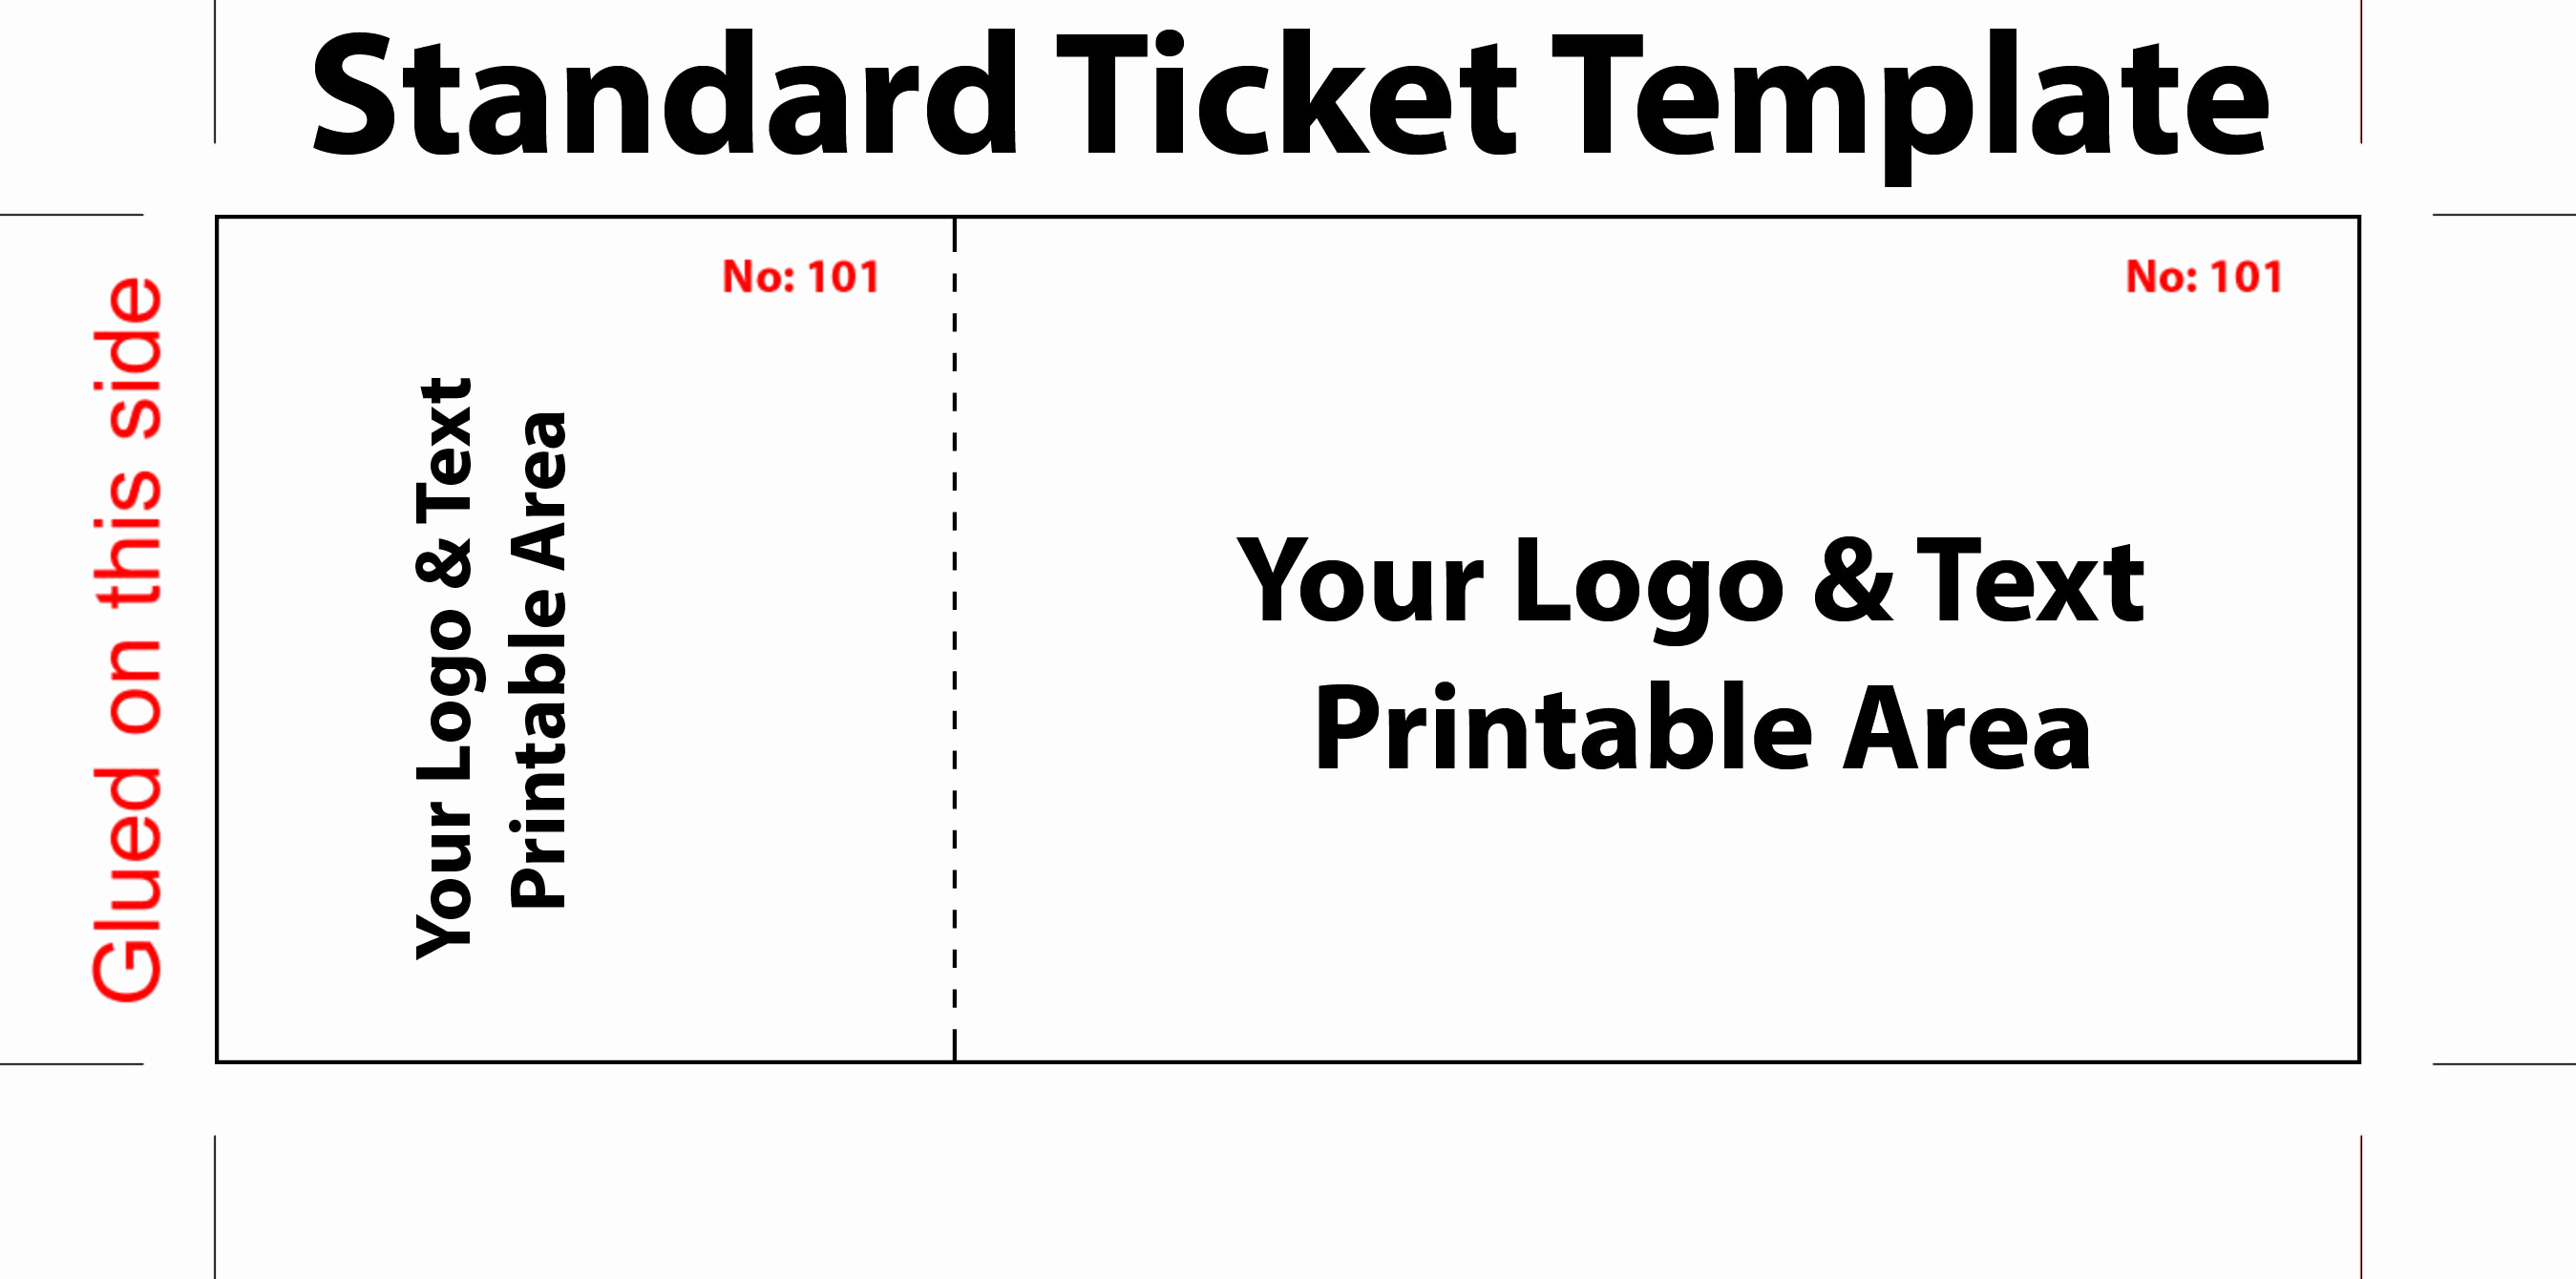 Free Printable Ticket Template New Free Editable Standard Ticket Template Example for Concert